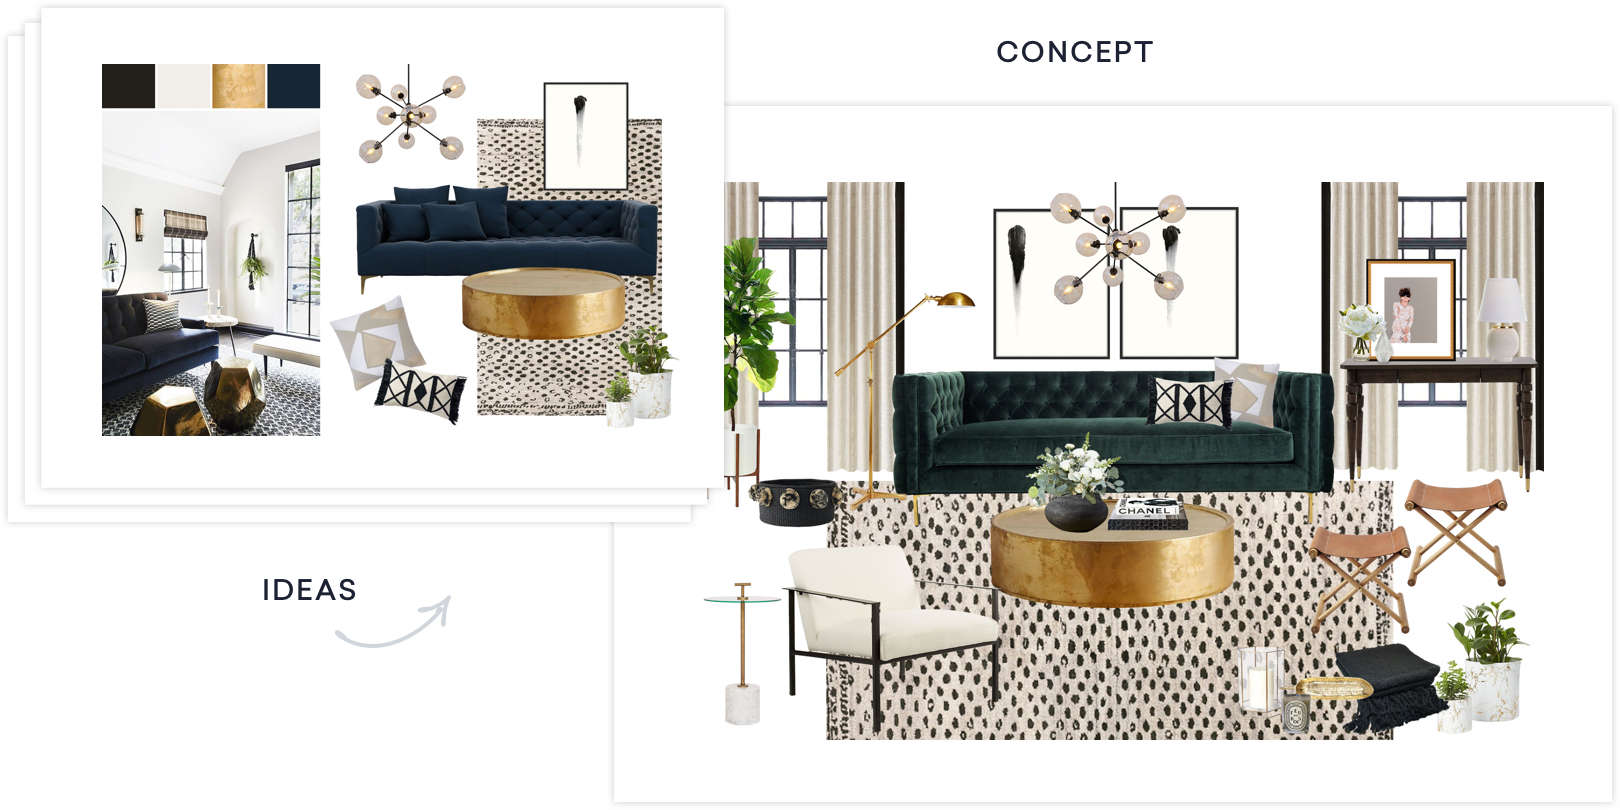 S&le idea and concepts with personalized products picked by an interior designer